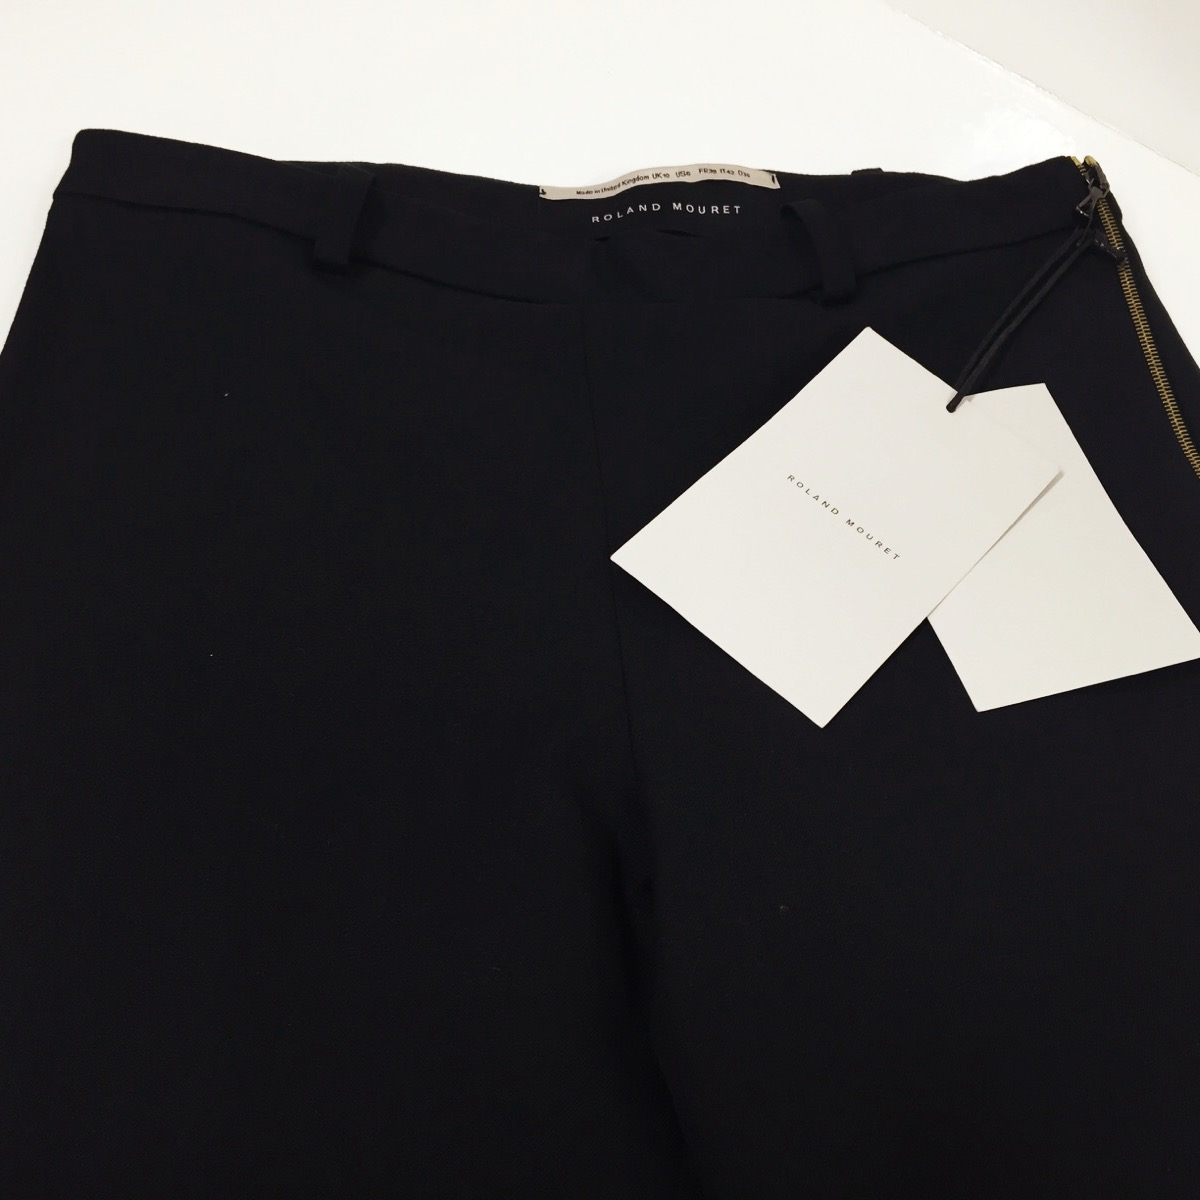 We tapered the legs from hips to nothing at hem, keeping the full flair hem.